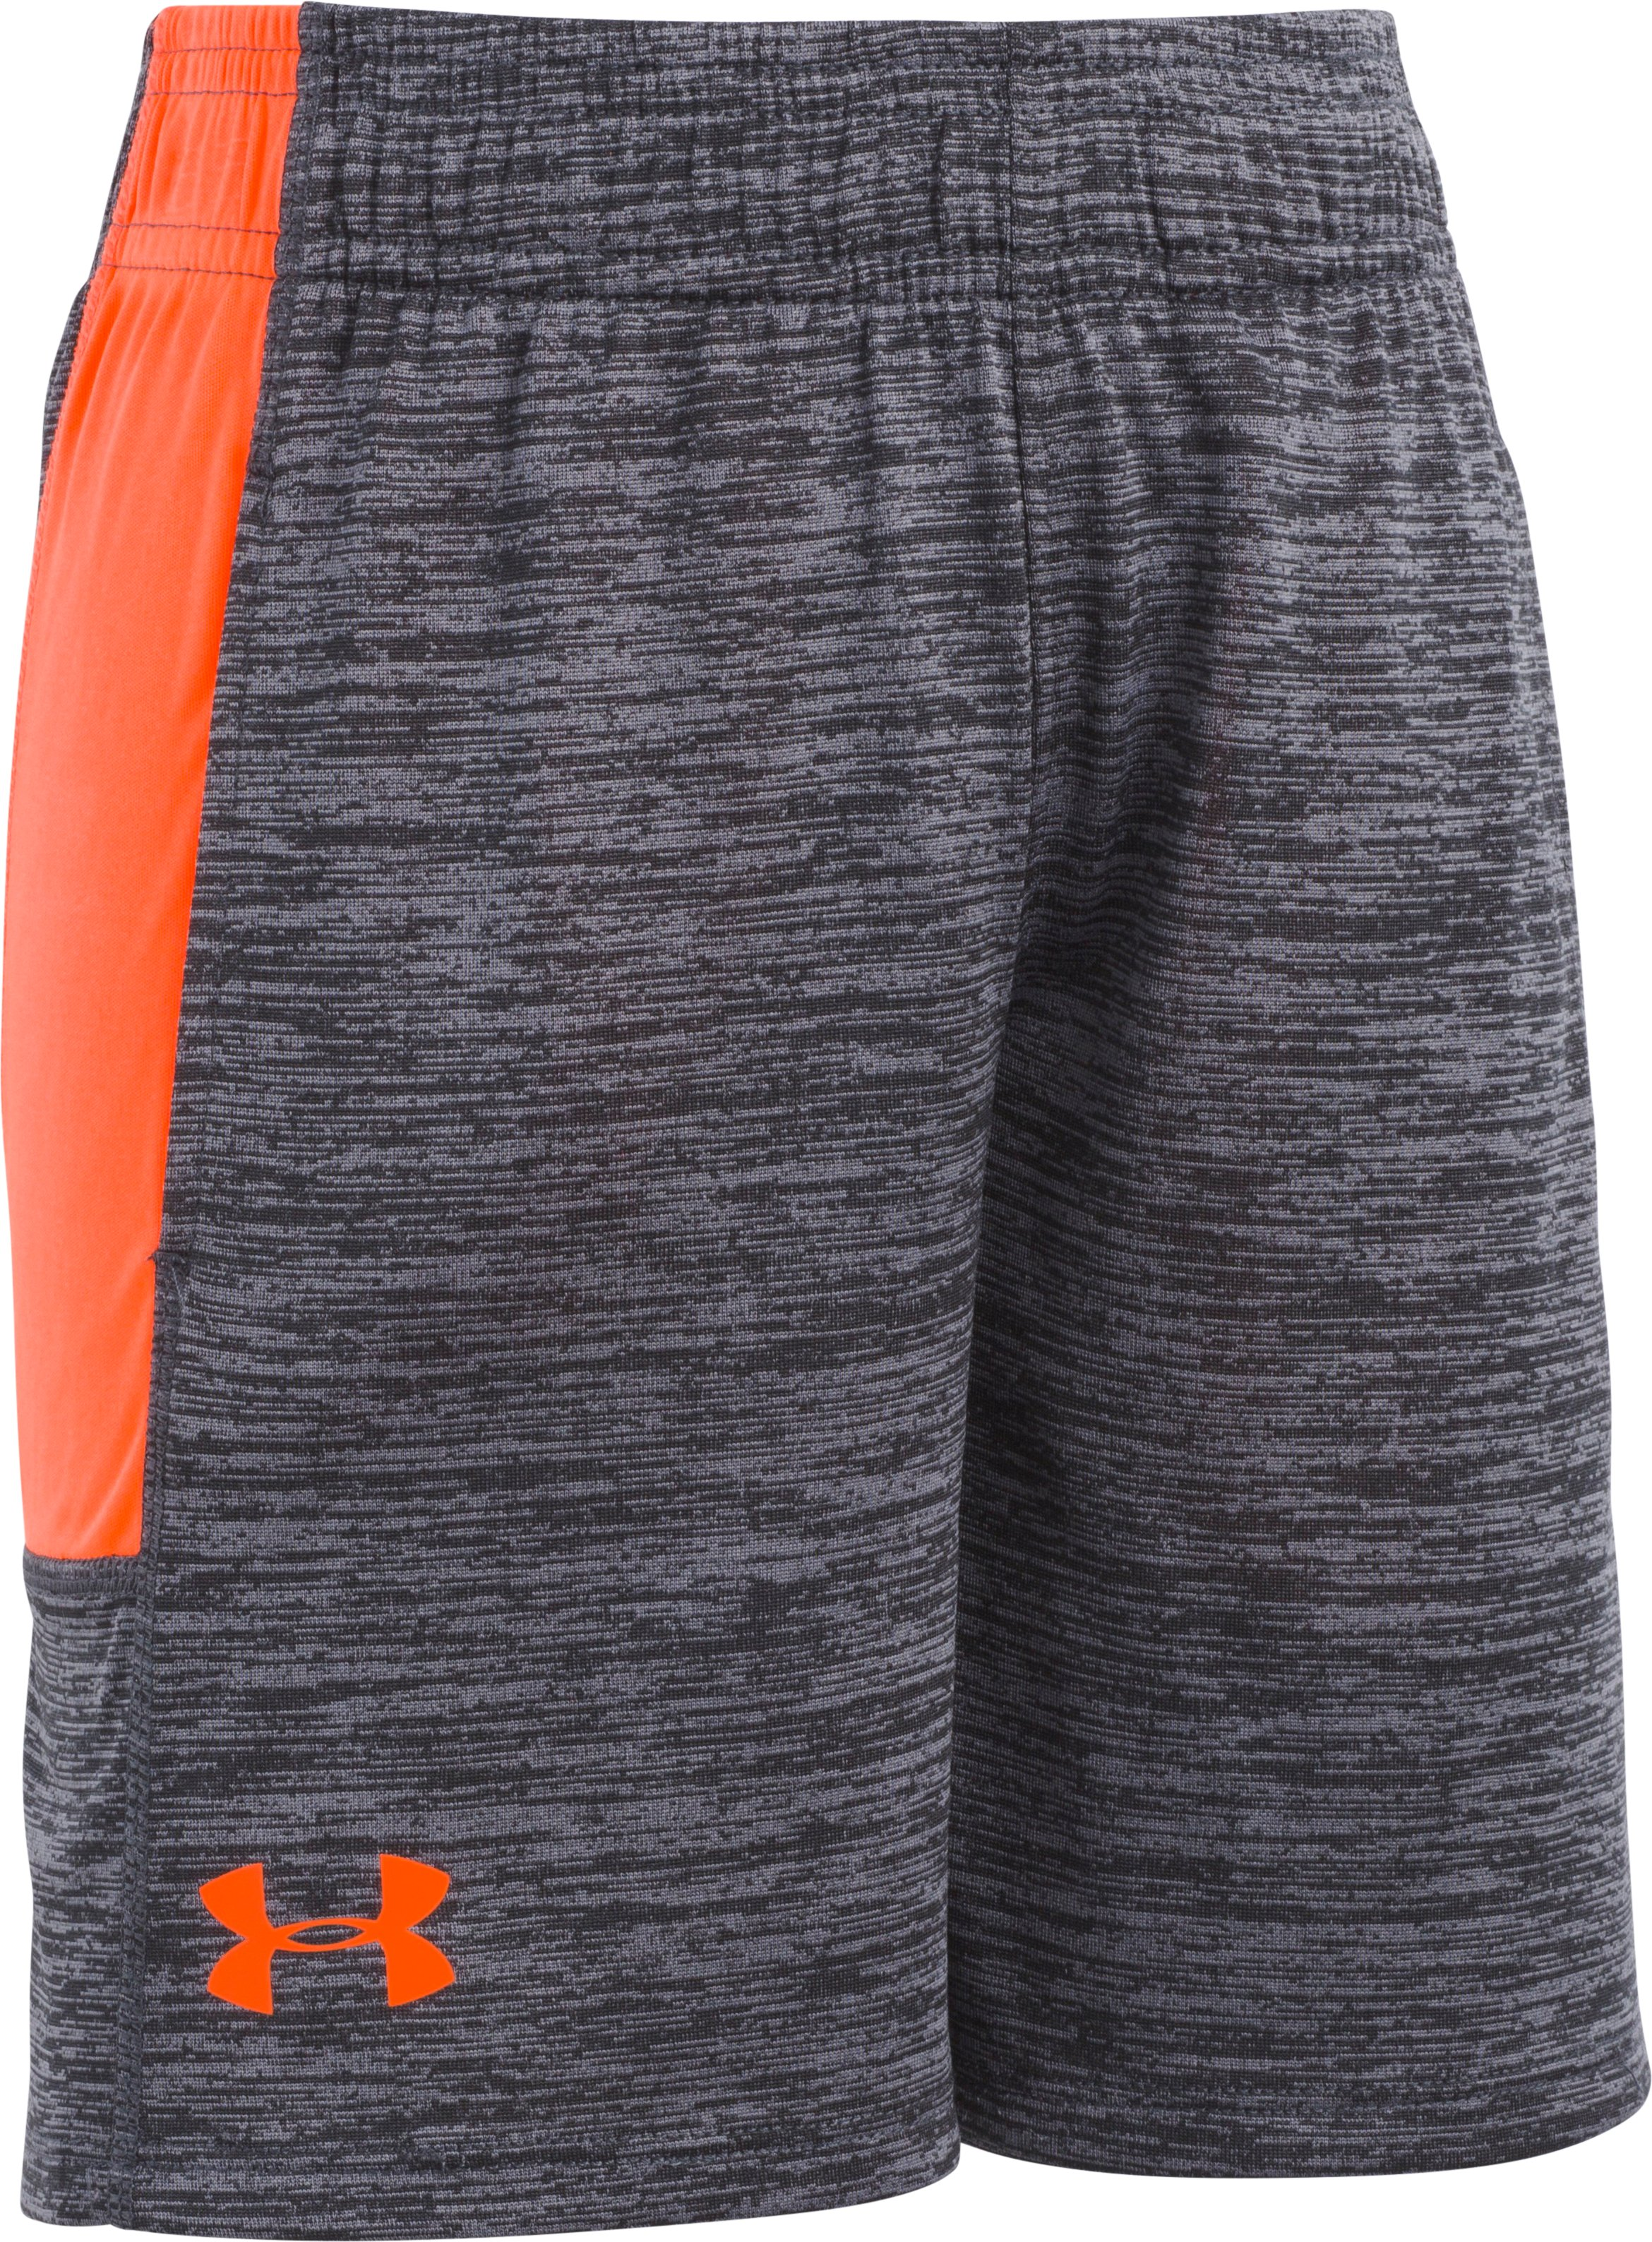 Boys' Pre-School UA Twist Stunt Shorts , ANTHRACITE, Laydown